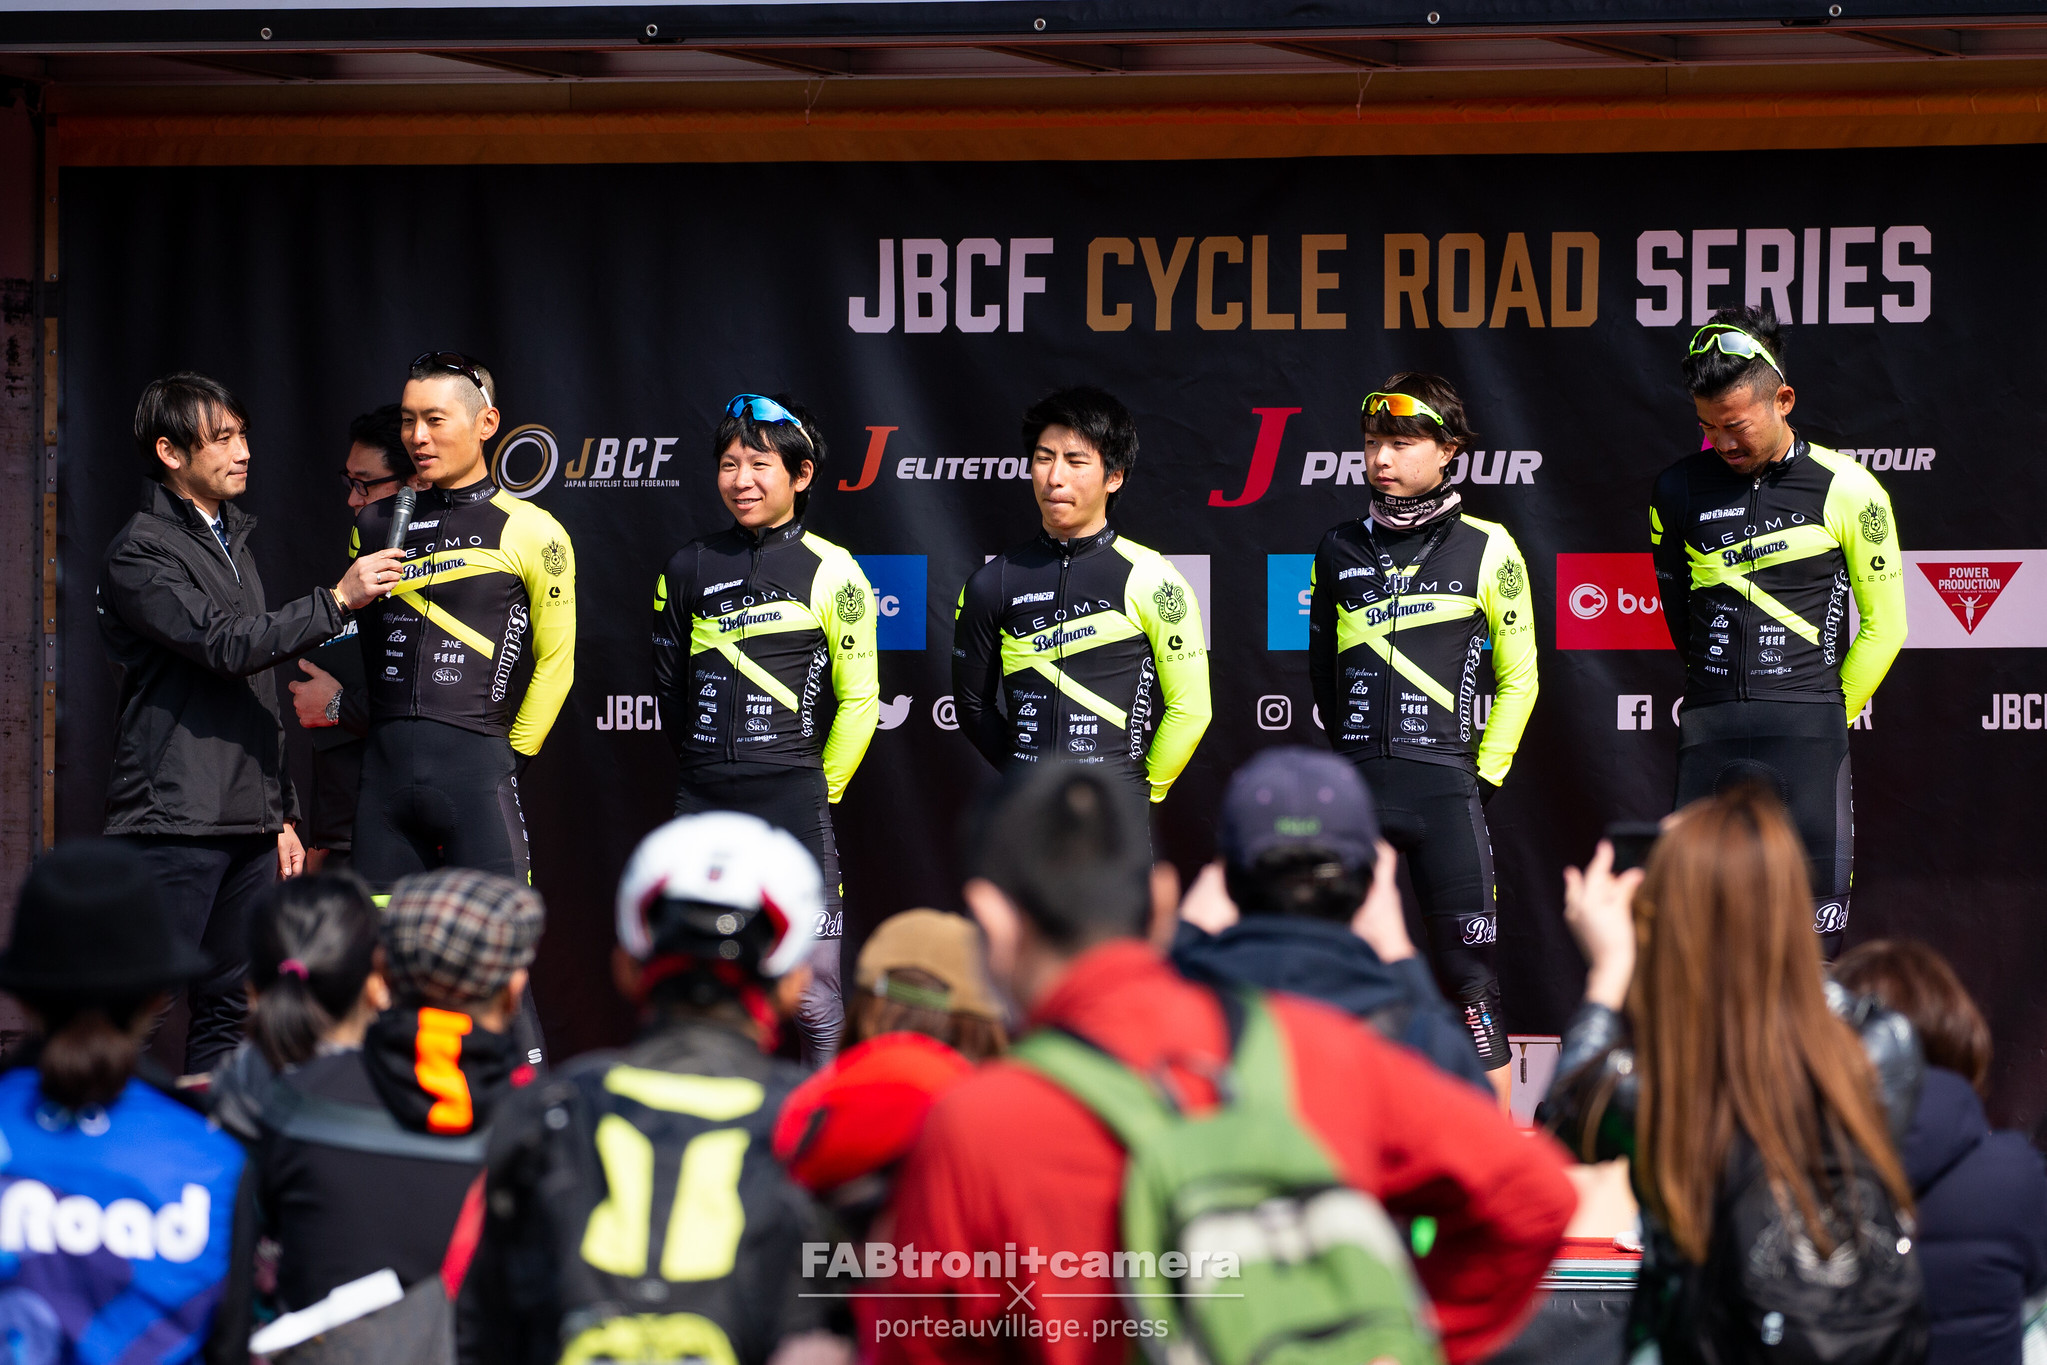 REPORT: LEOMO Bellmare Racing Team